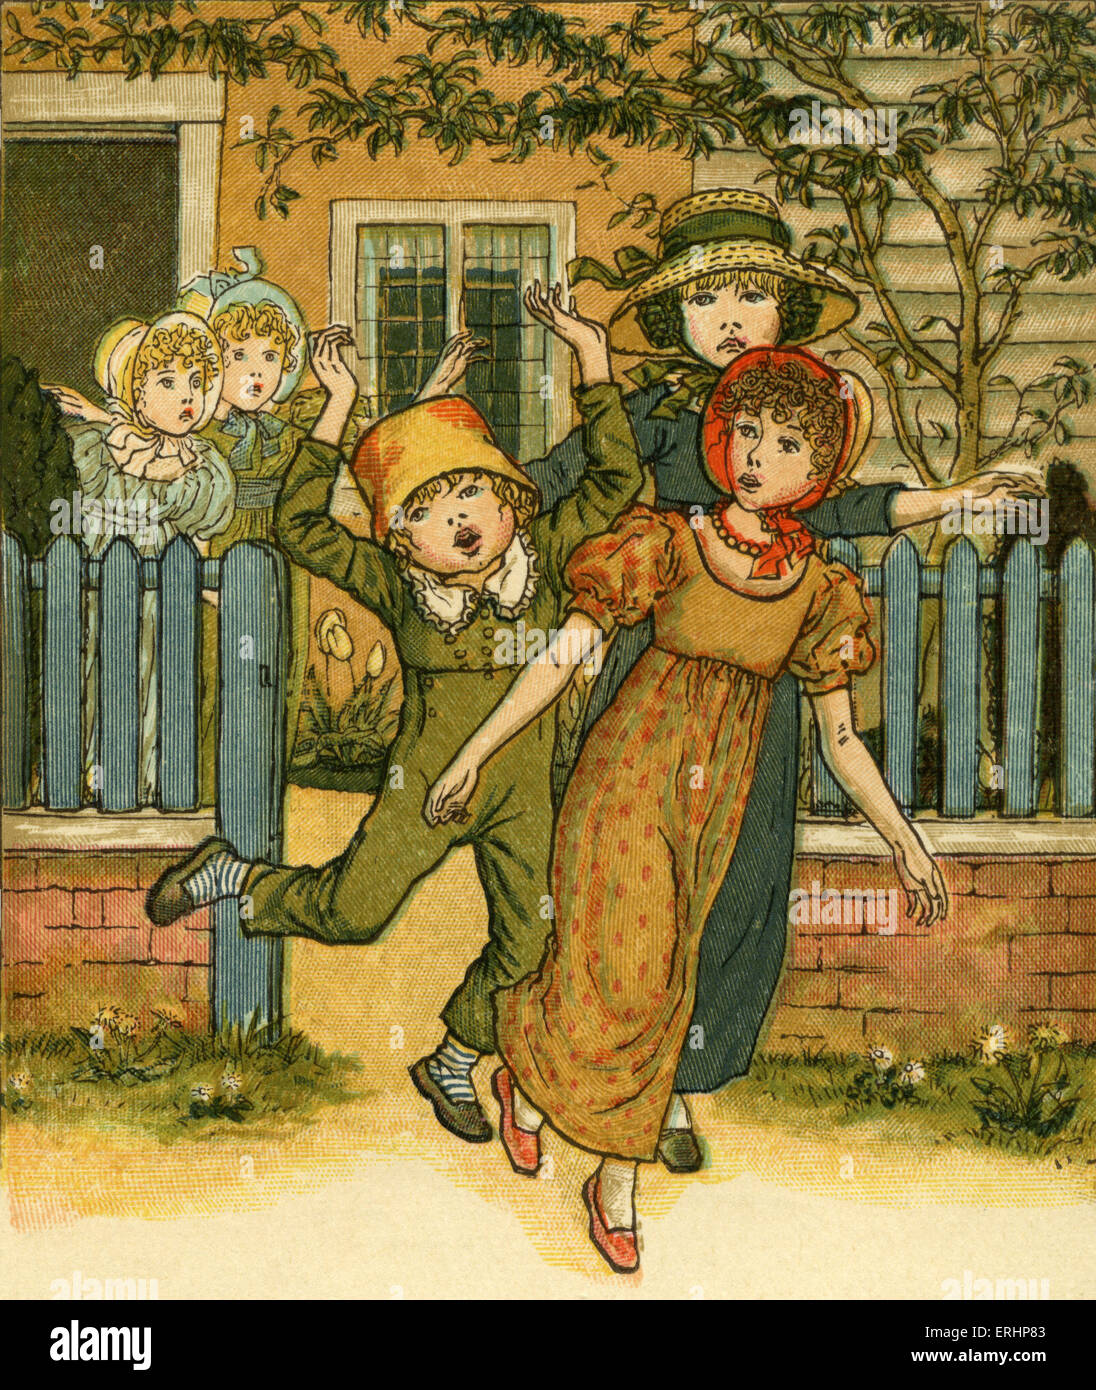 Girls and boys come out to play illustrated by Kate Greenaway Stock Photo -  Alamy